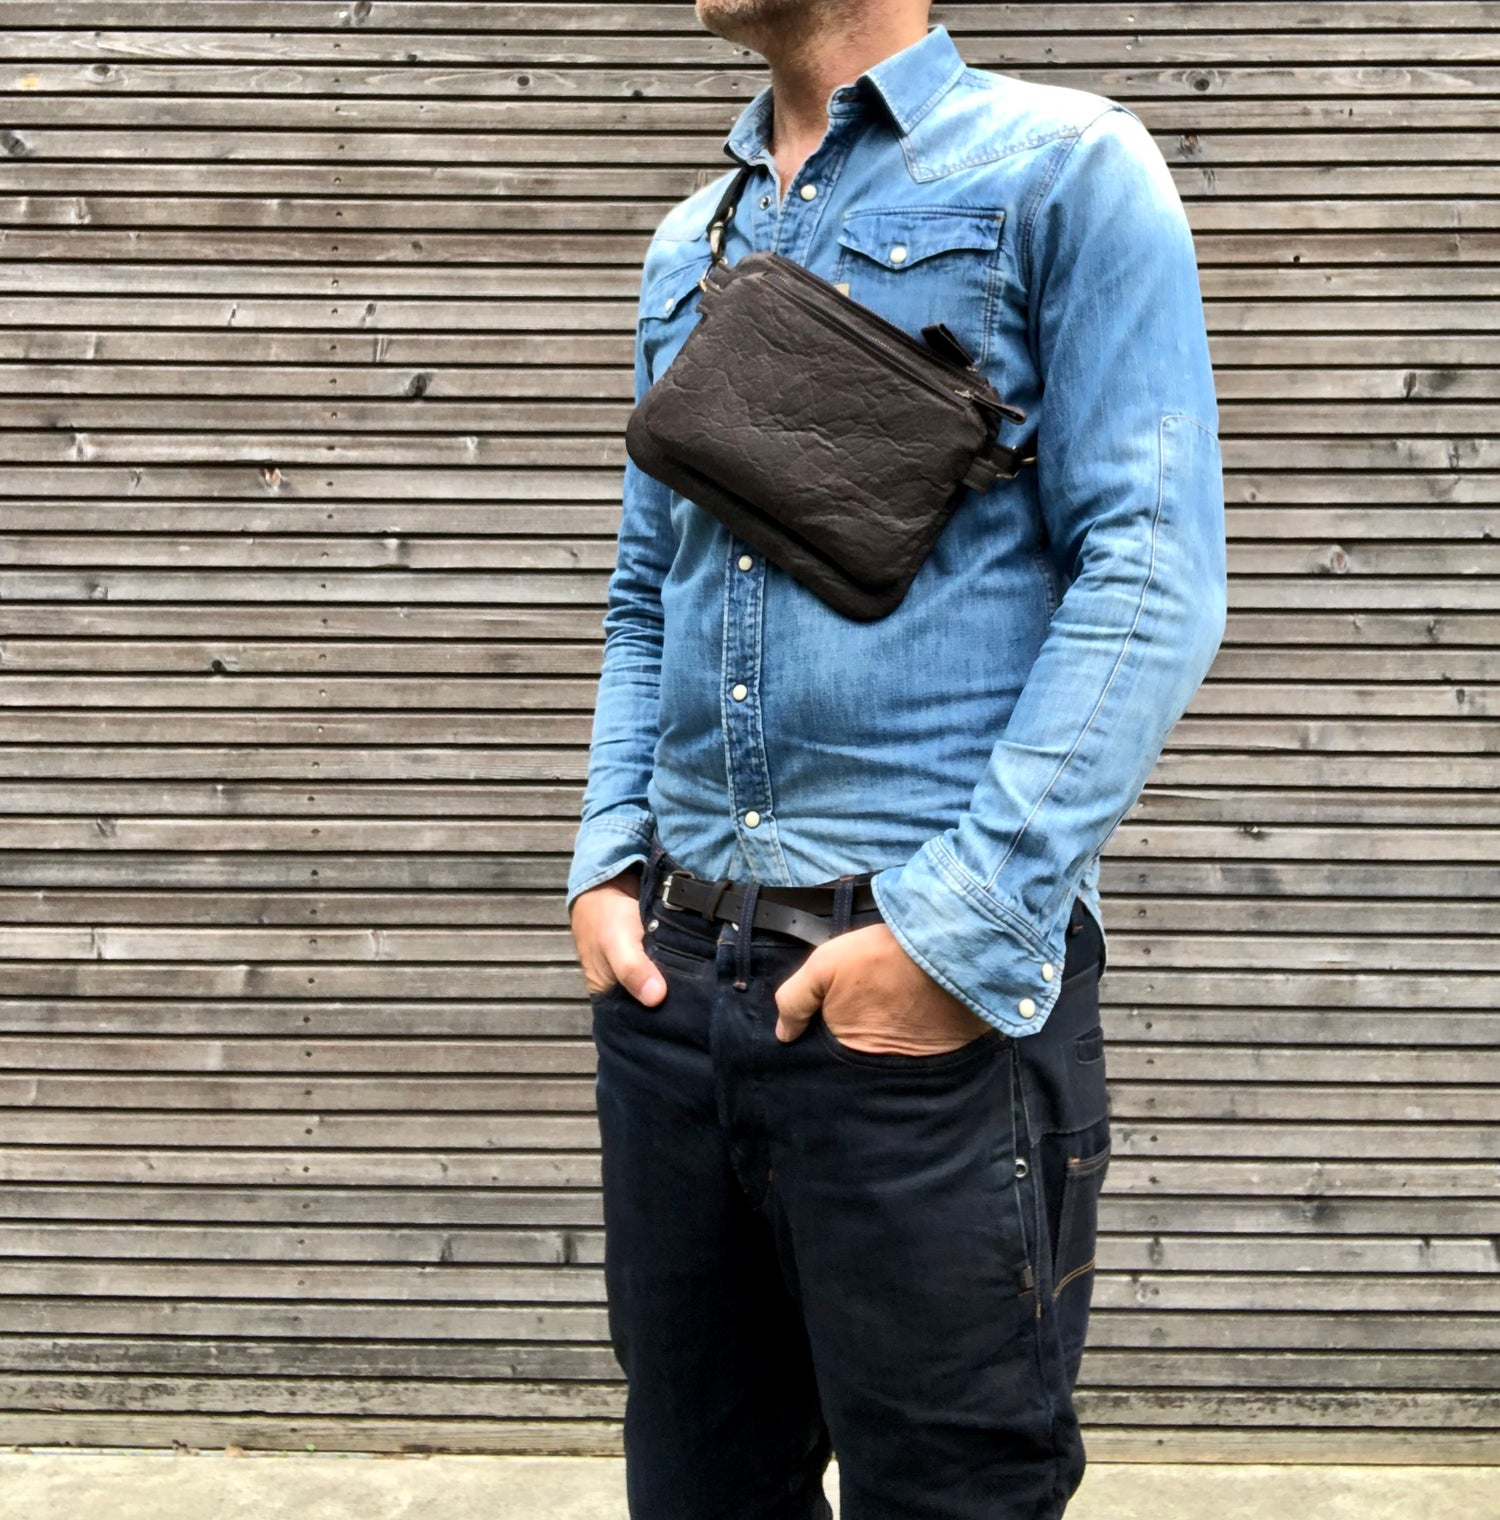 Image of Pinatex fanny pack / vegan belt bag / small messenger bag/ kangaroo bag with shoulder strap